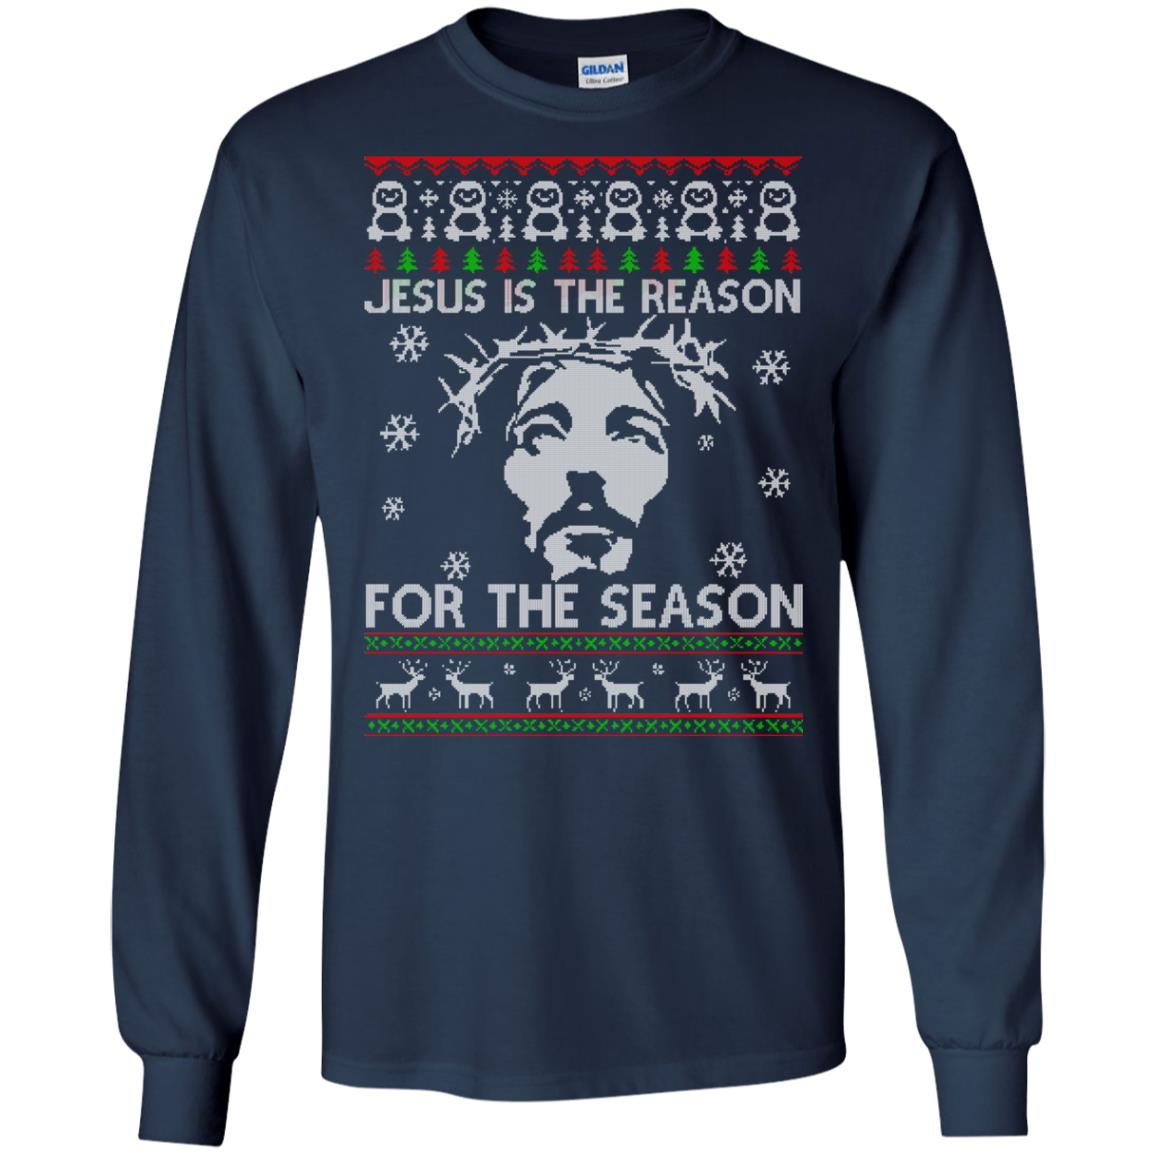 The Reason For The Season Jesus Christmas Sweater, hoodie